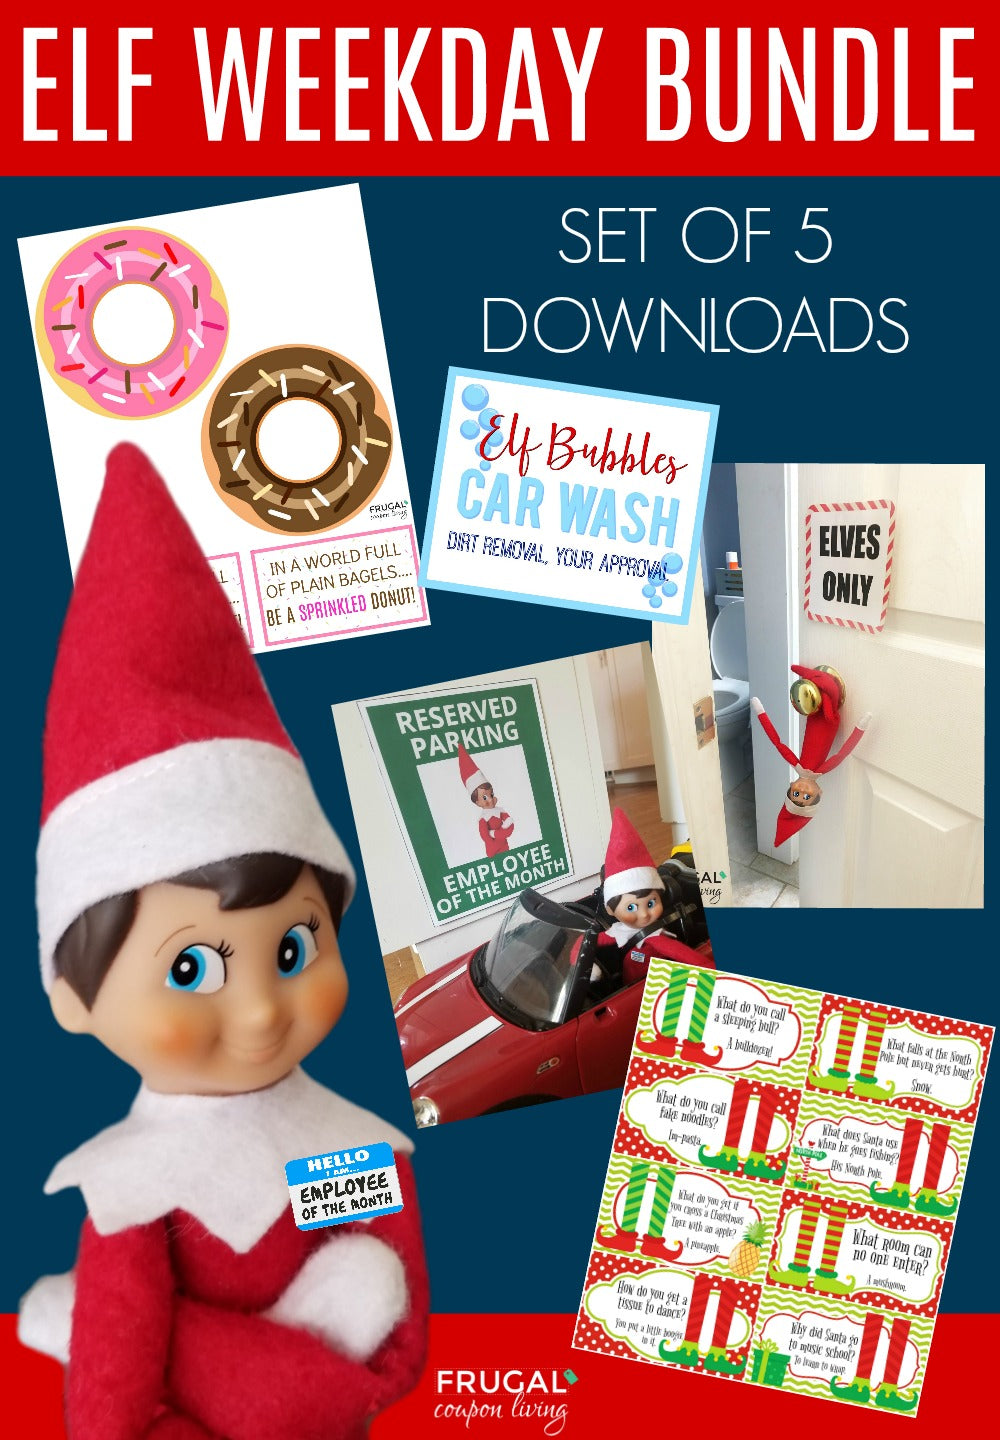 Elf Weekday Bundle - Set of 5